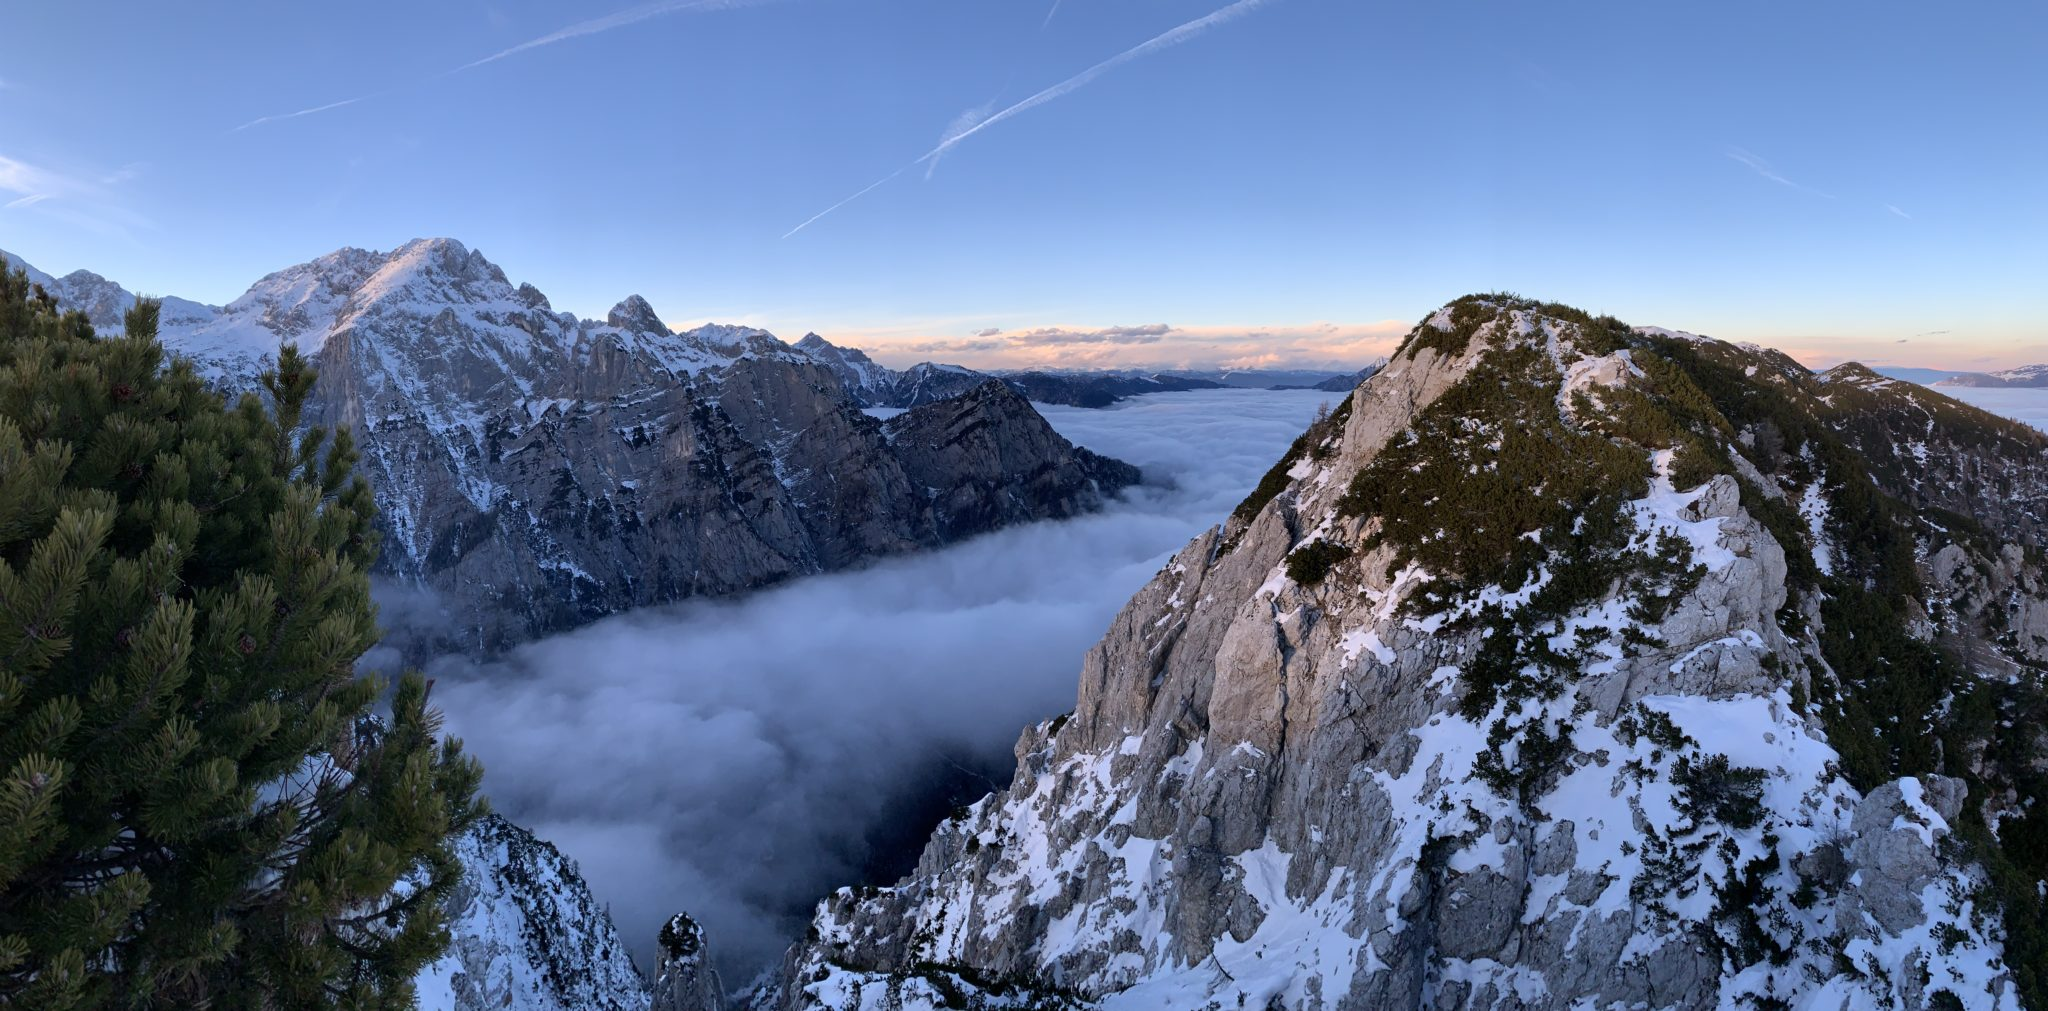 Julian Alps mountains with a sea of fog, Triglav National Park, Slovenia